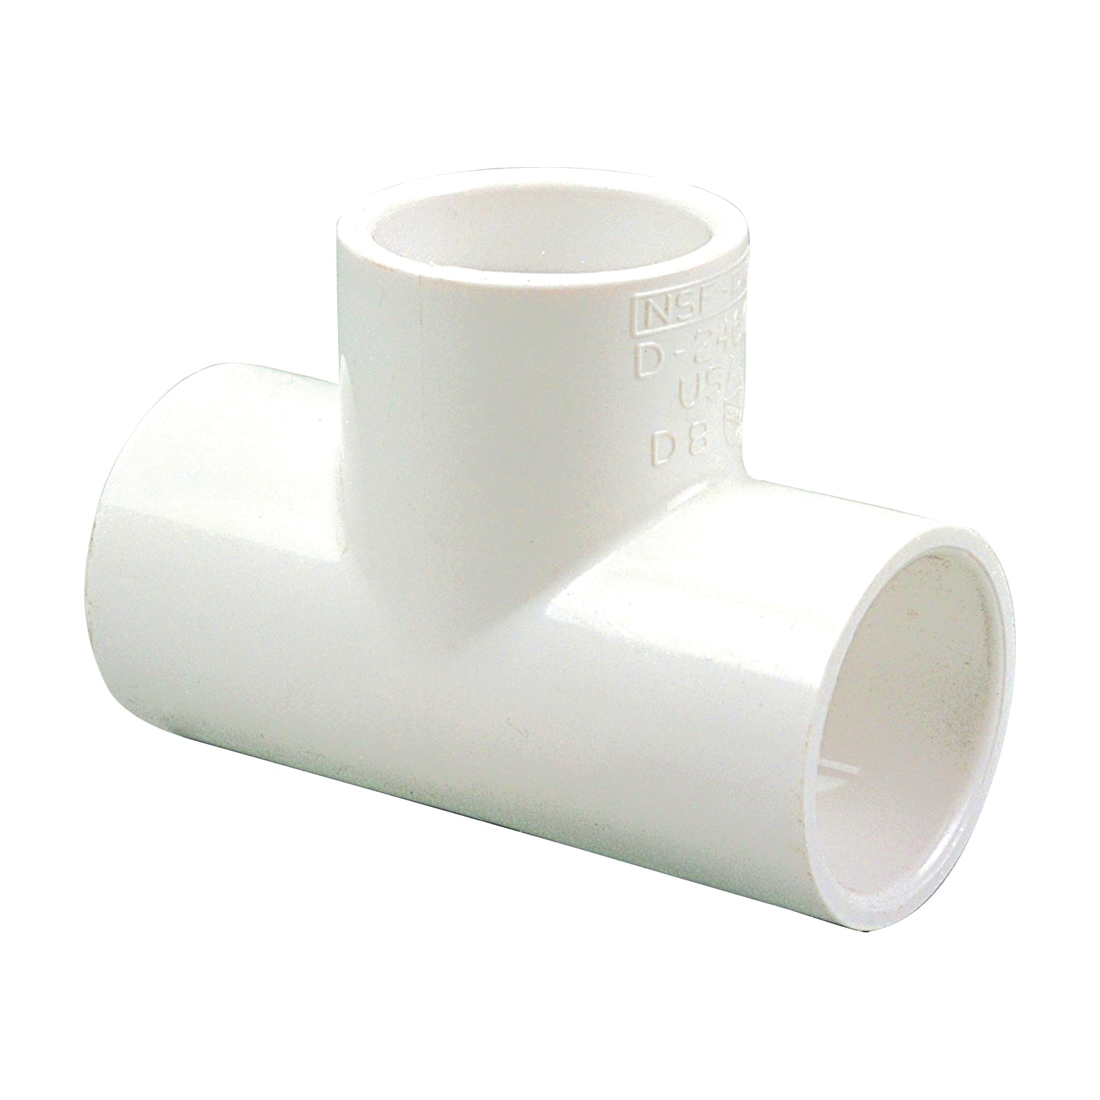 NIBCO® L11235YP 4611 Tee, 8 in Nominal, Slip End Style, SCH 40/STD, PVC, Domestic